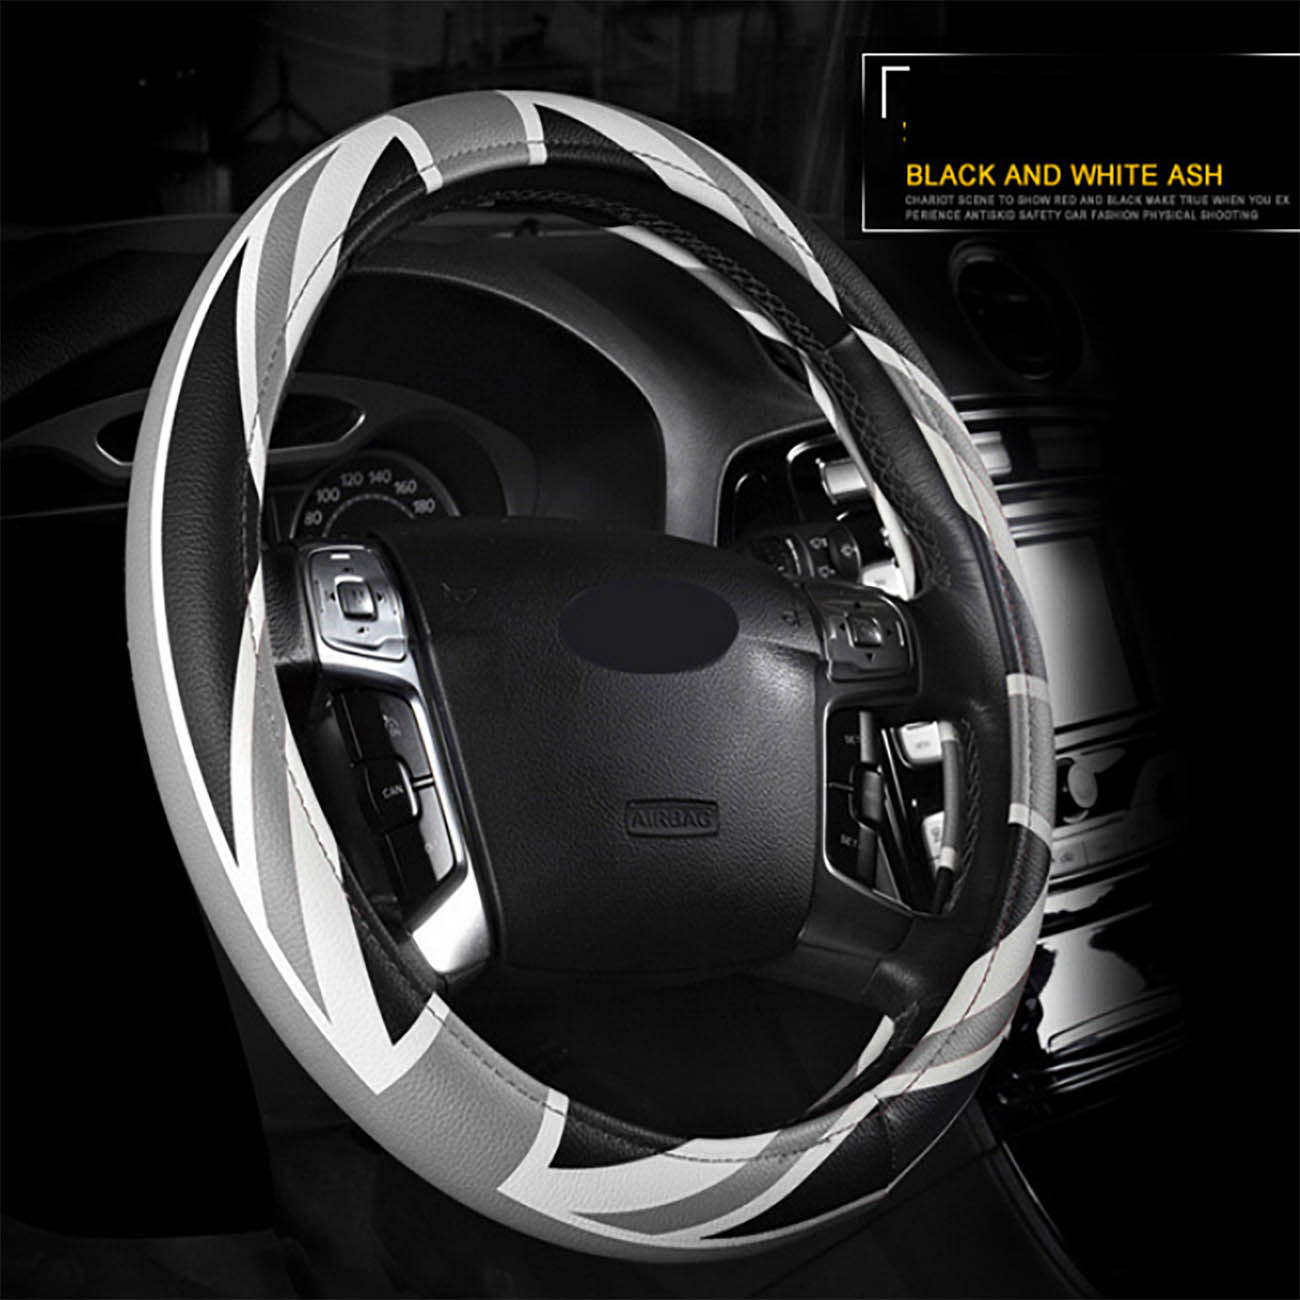 Interior popular Car accessories Steering wheel cover universal for cars 37 38cm diameter steering wheel car styling in Steering Covers from Automobiles Motorcycles